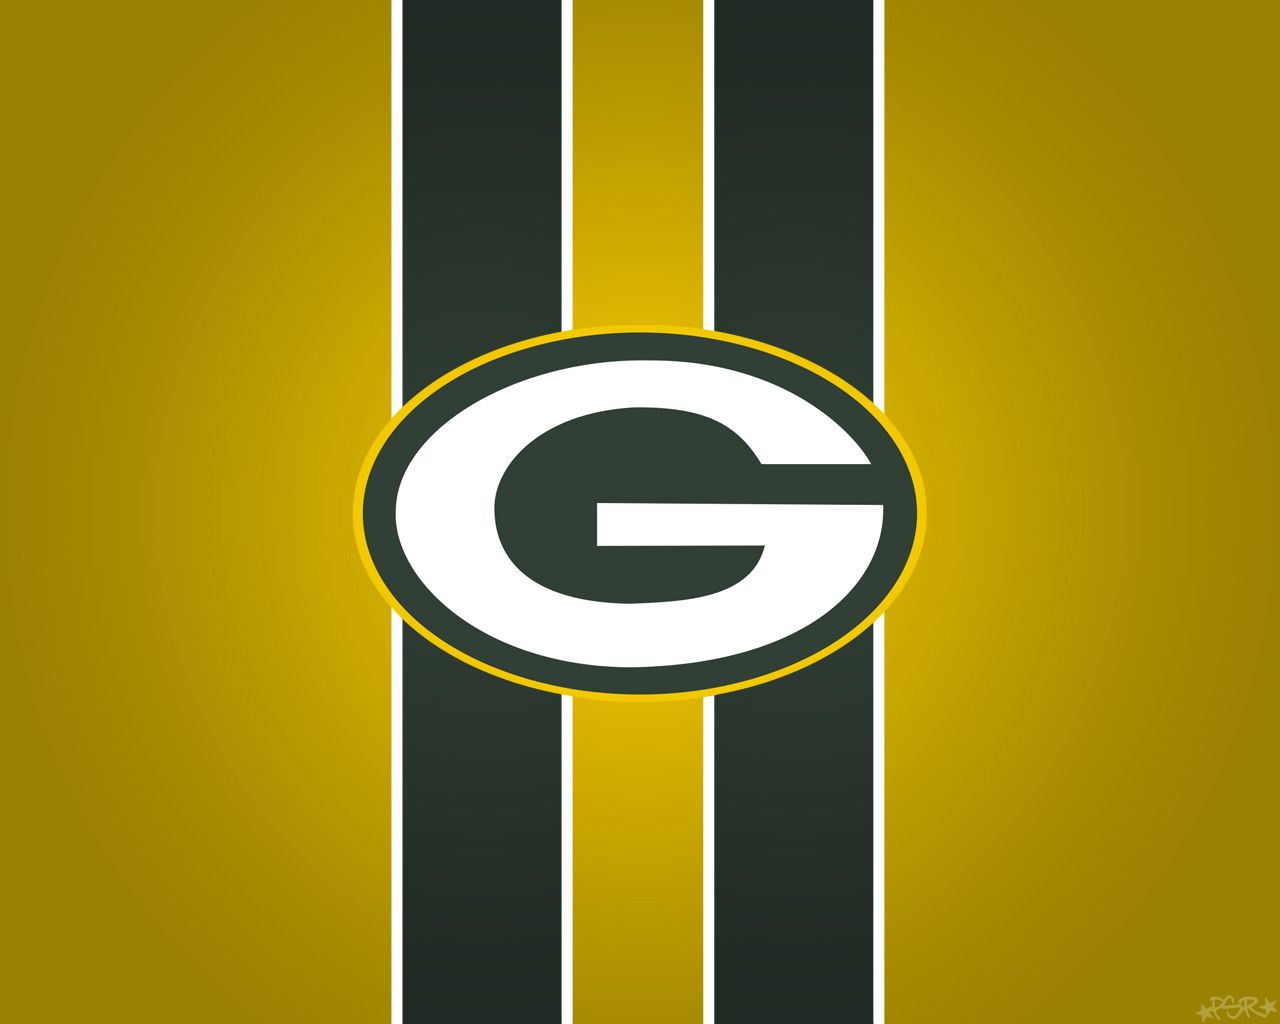 The Green Bay Packers My Life Force Green Bay Packers Wallpaper Green Bay Packers Logo Green Bay Packers